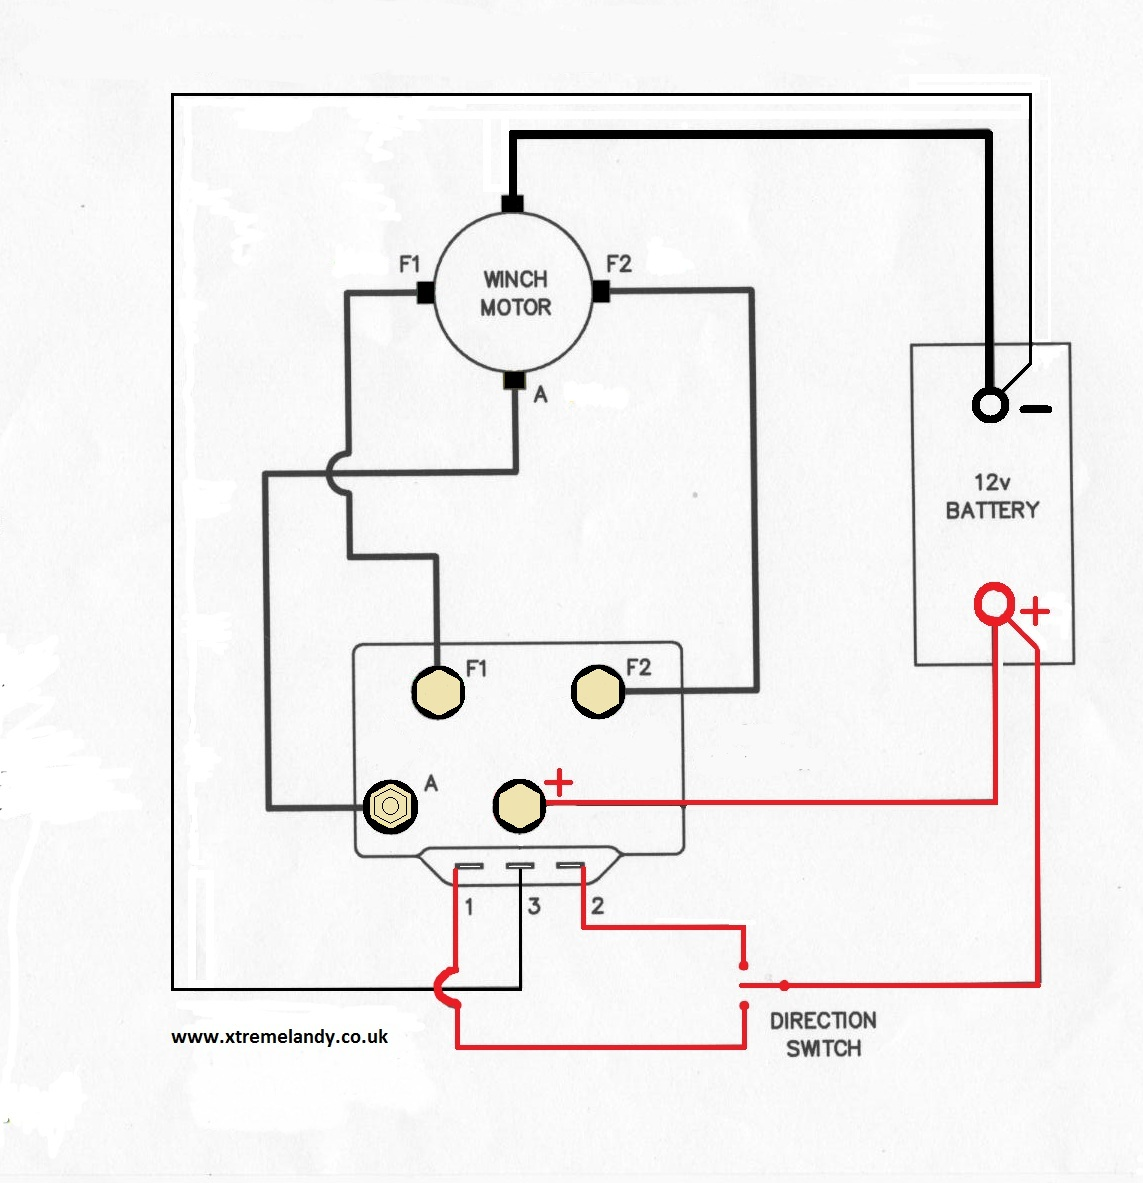 wiring diagram for a warn winch with Downloadable Manuals on Downloadable manuals likewise Polaris Snowmobile Wiring Diagram furthermore Ramsey Winch Remote Wiring Diagram also Wiring Diagram Large Frame 3 Wire 2040 together with Superwinch Winch Wiring Diagram.